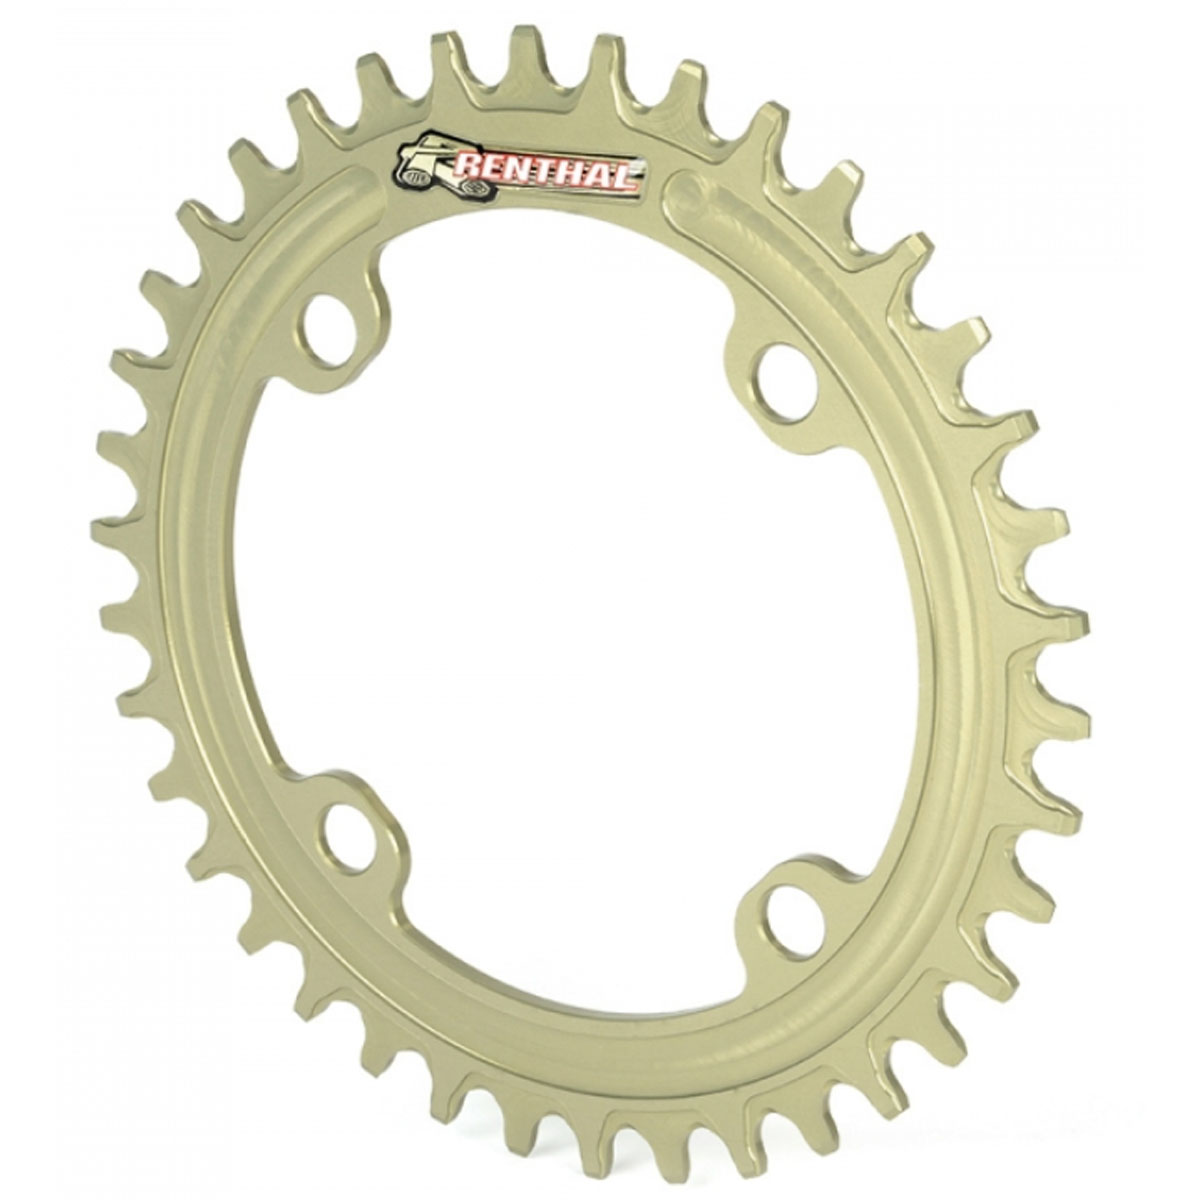 Renthal 1XR 104mm Retaining Aluminum Bicycle Chainring - 34T, 9-11sp, BCD: 104 - Gold - MCR107-564-34PHA